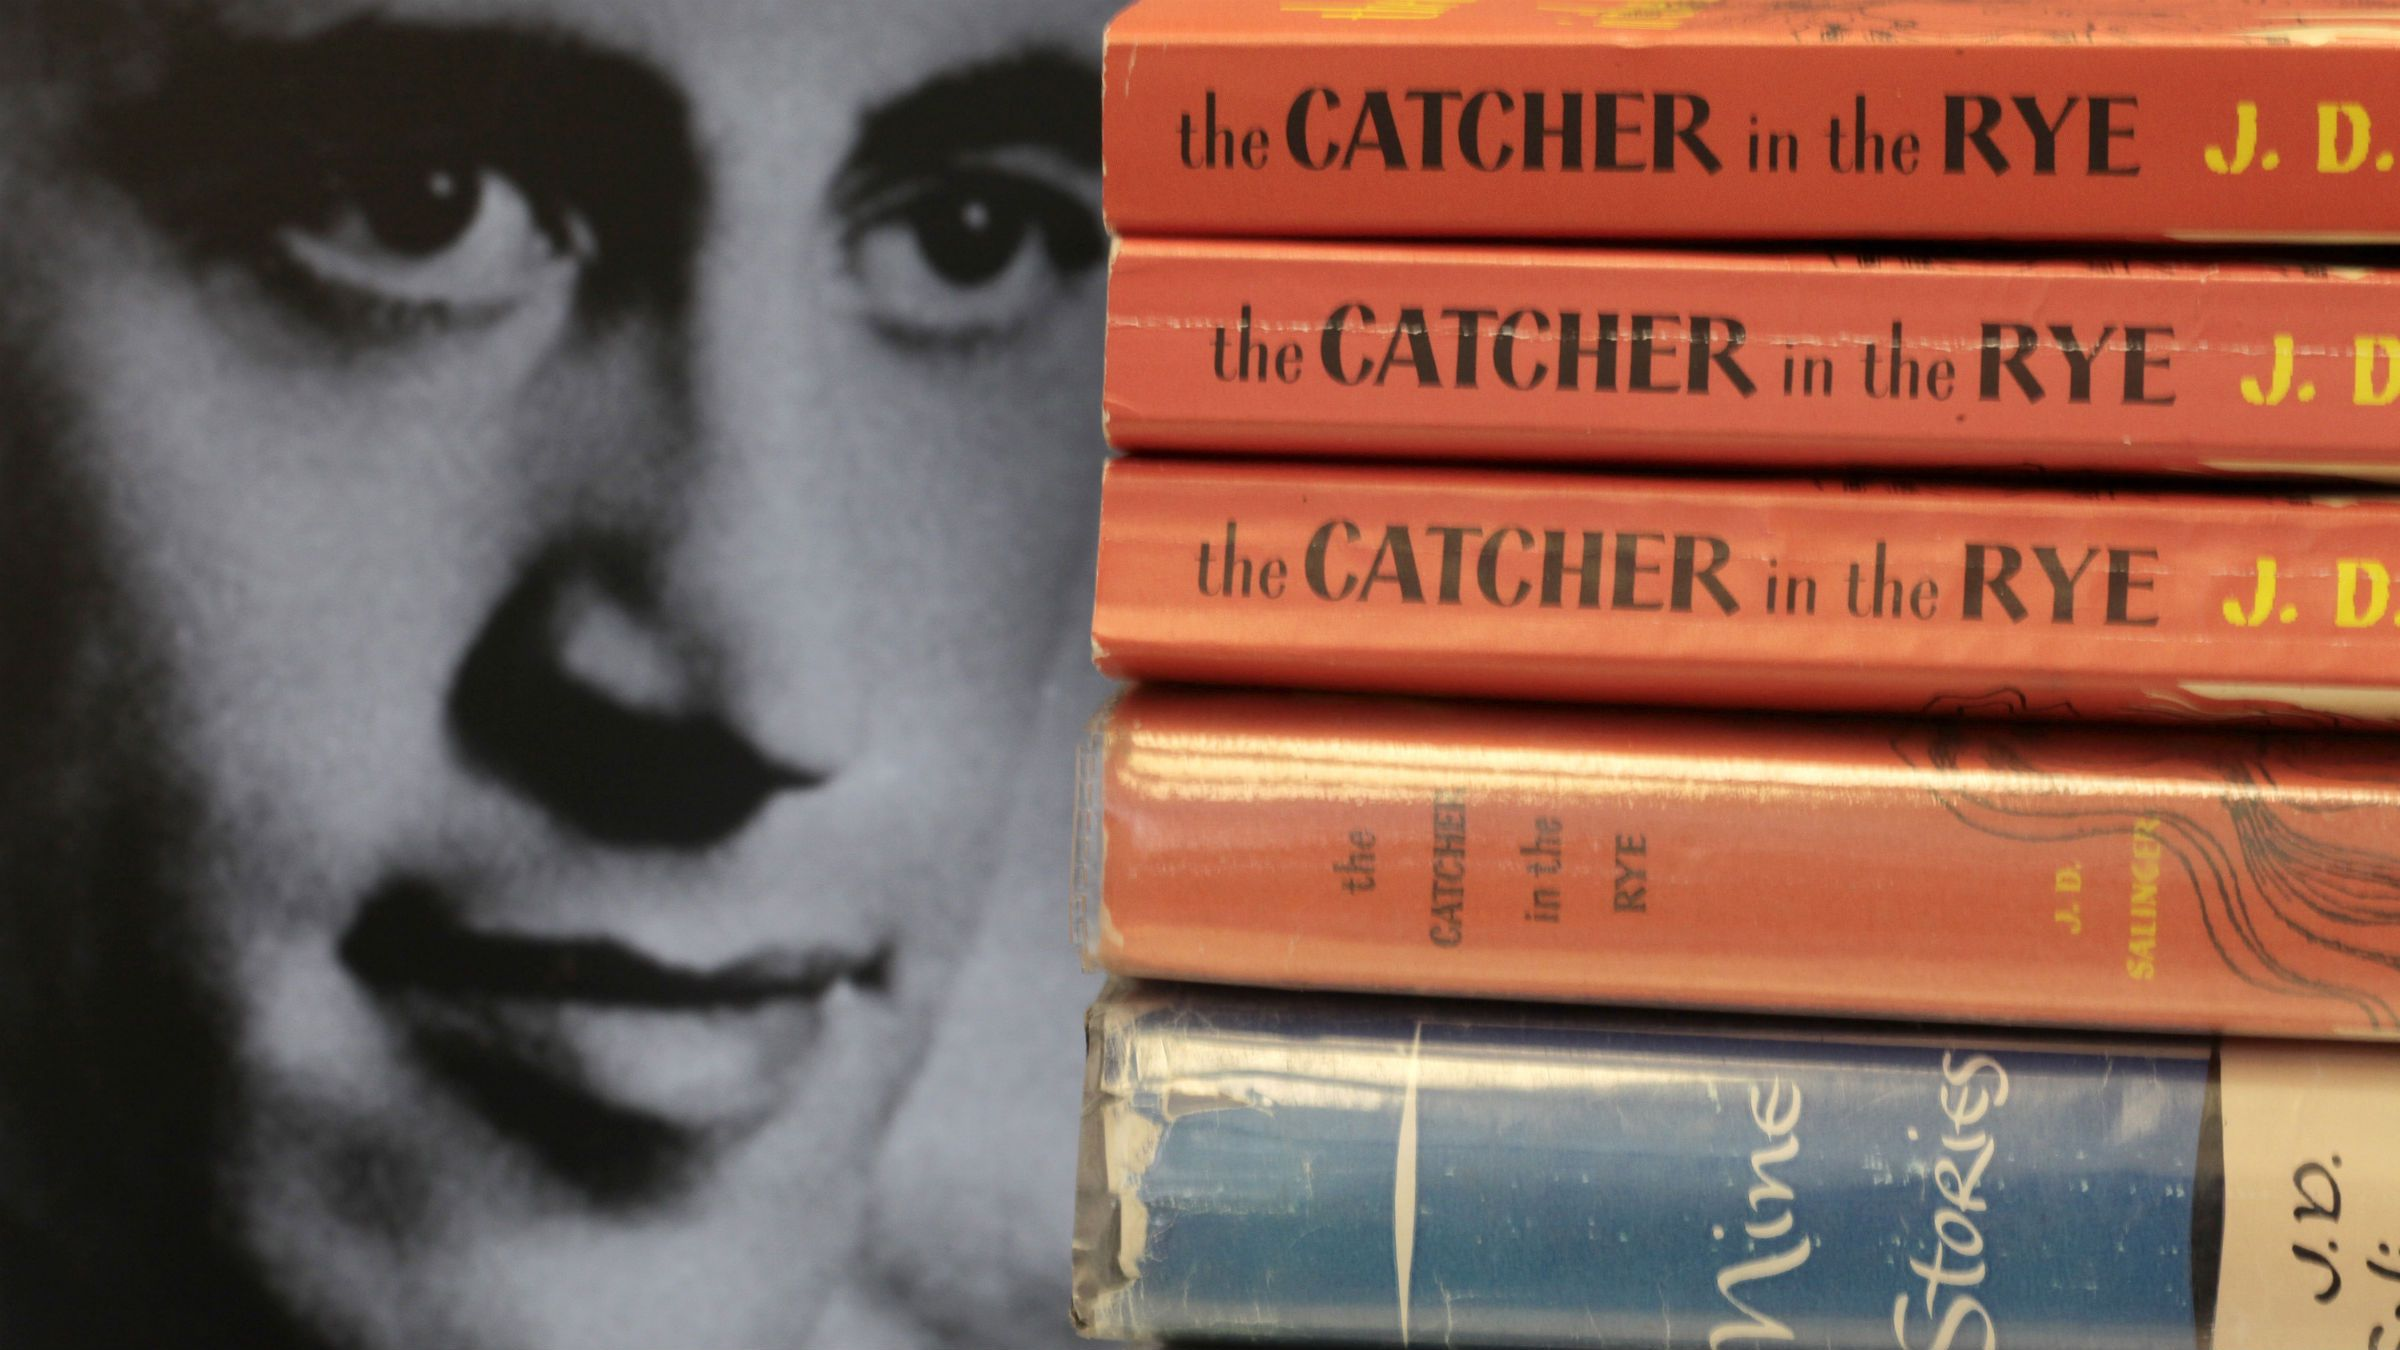 """FILE - In this Jan. 28, 2010 file photo, a photo of J.D. Salinger appears next to copies of his classic novel """"The Catcher in the Rye"""" as well as his volume of short stories called """"Nine Stories"""" at the Orange Public Library in Orange Village, Ohio. Salinger, died Jan. 27, 2010, in Cornish, N.H., at the age of 91. Letters written by Salinger to a spiritual mentor have been donated to the Morgan Library & Museum. The Morgan, based in Manhattan, announced Tuesday, April 9, 2013, that it will receive 28 letters by the author of """"The Catcher of the Rye."""" The letters were written to Swami Vivekananda, founder of the Ramakrishna-Vivekananda Center, which donated the correspondence. (AP Photo/Amy Sancetta, File)"""